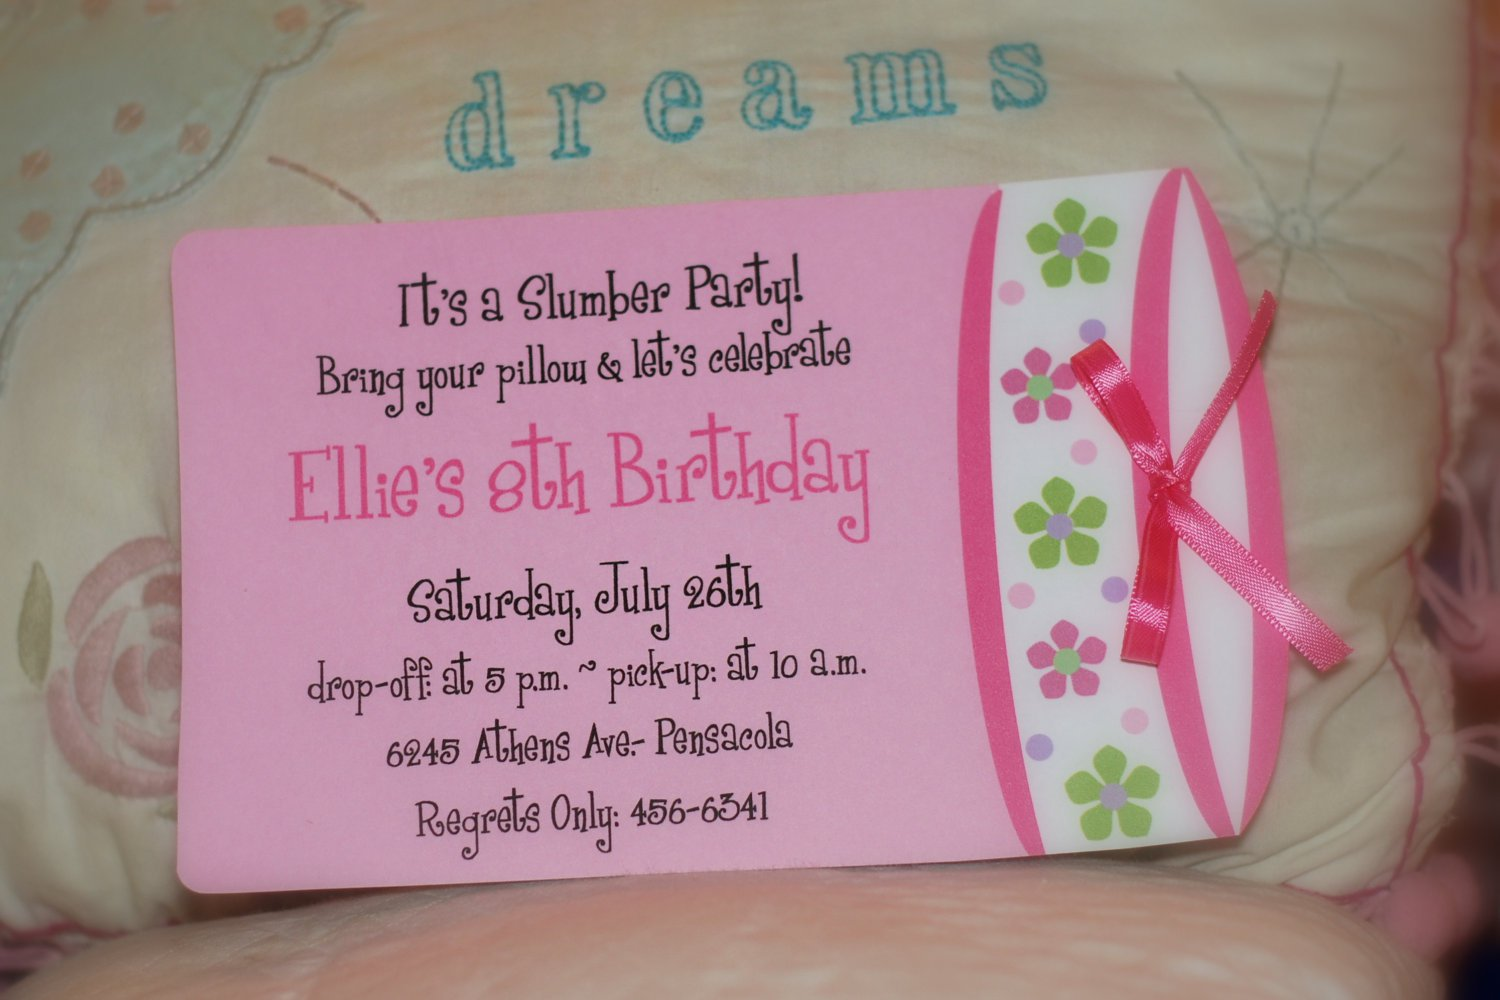 Slumber Party Invitations – How to Make Slumber Party Invitations